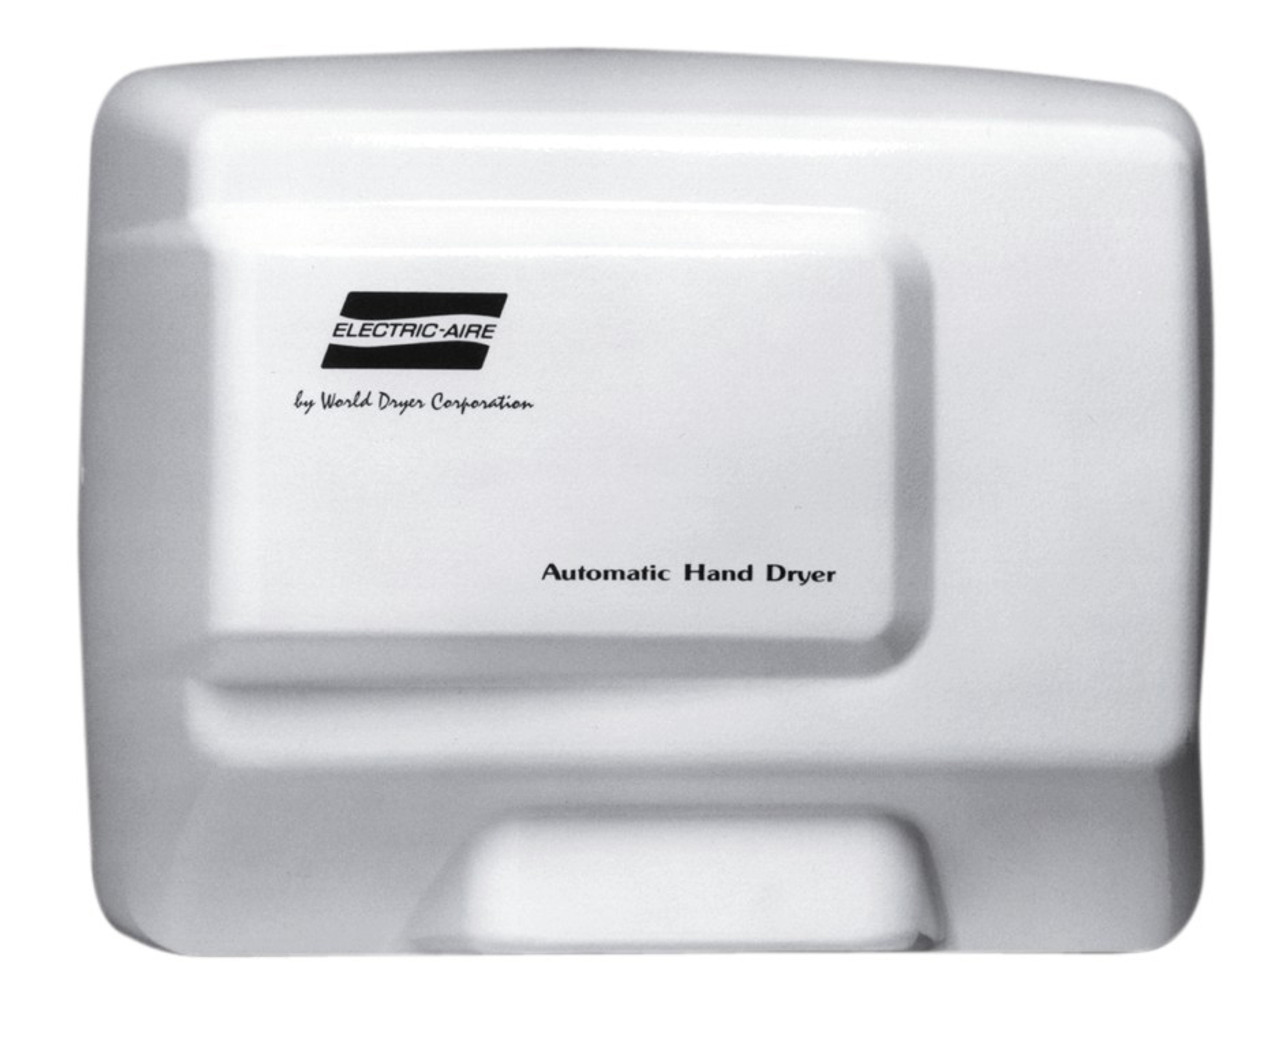 world dryer electric aire le 974 aluminum white automatic hand dryer - Air Hand Dryers